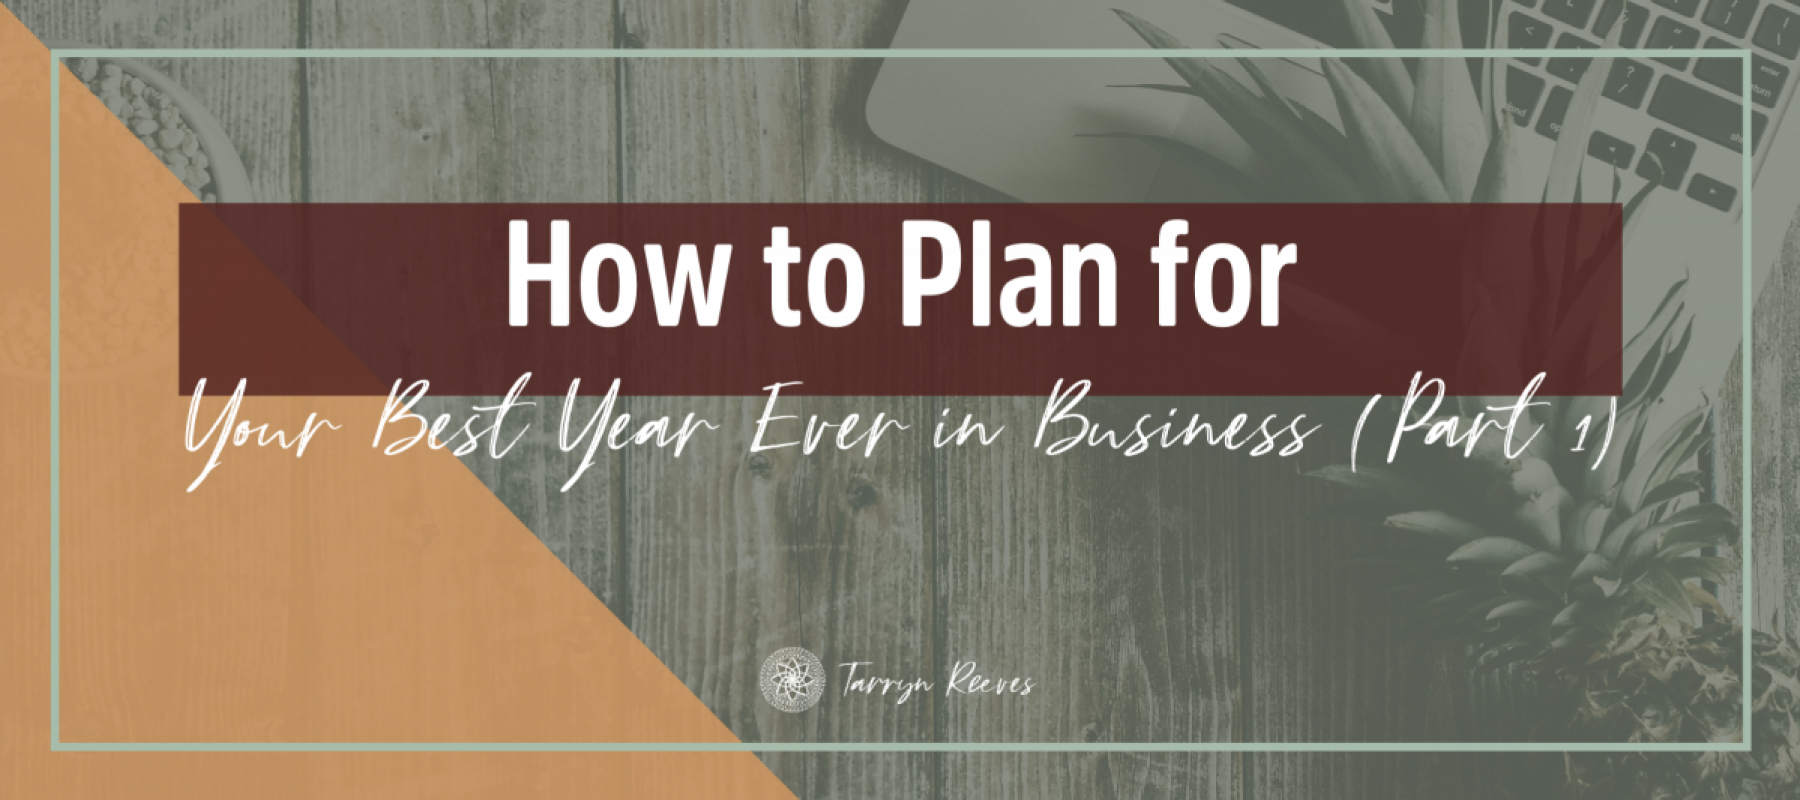 How To Plan For Your Best Year Ever In Business Part 1